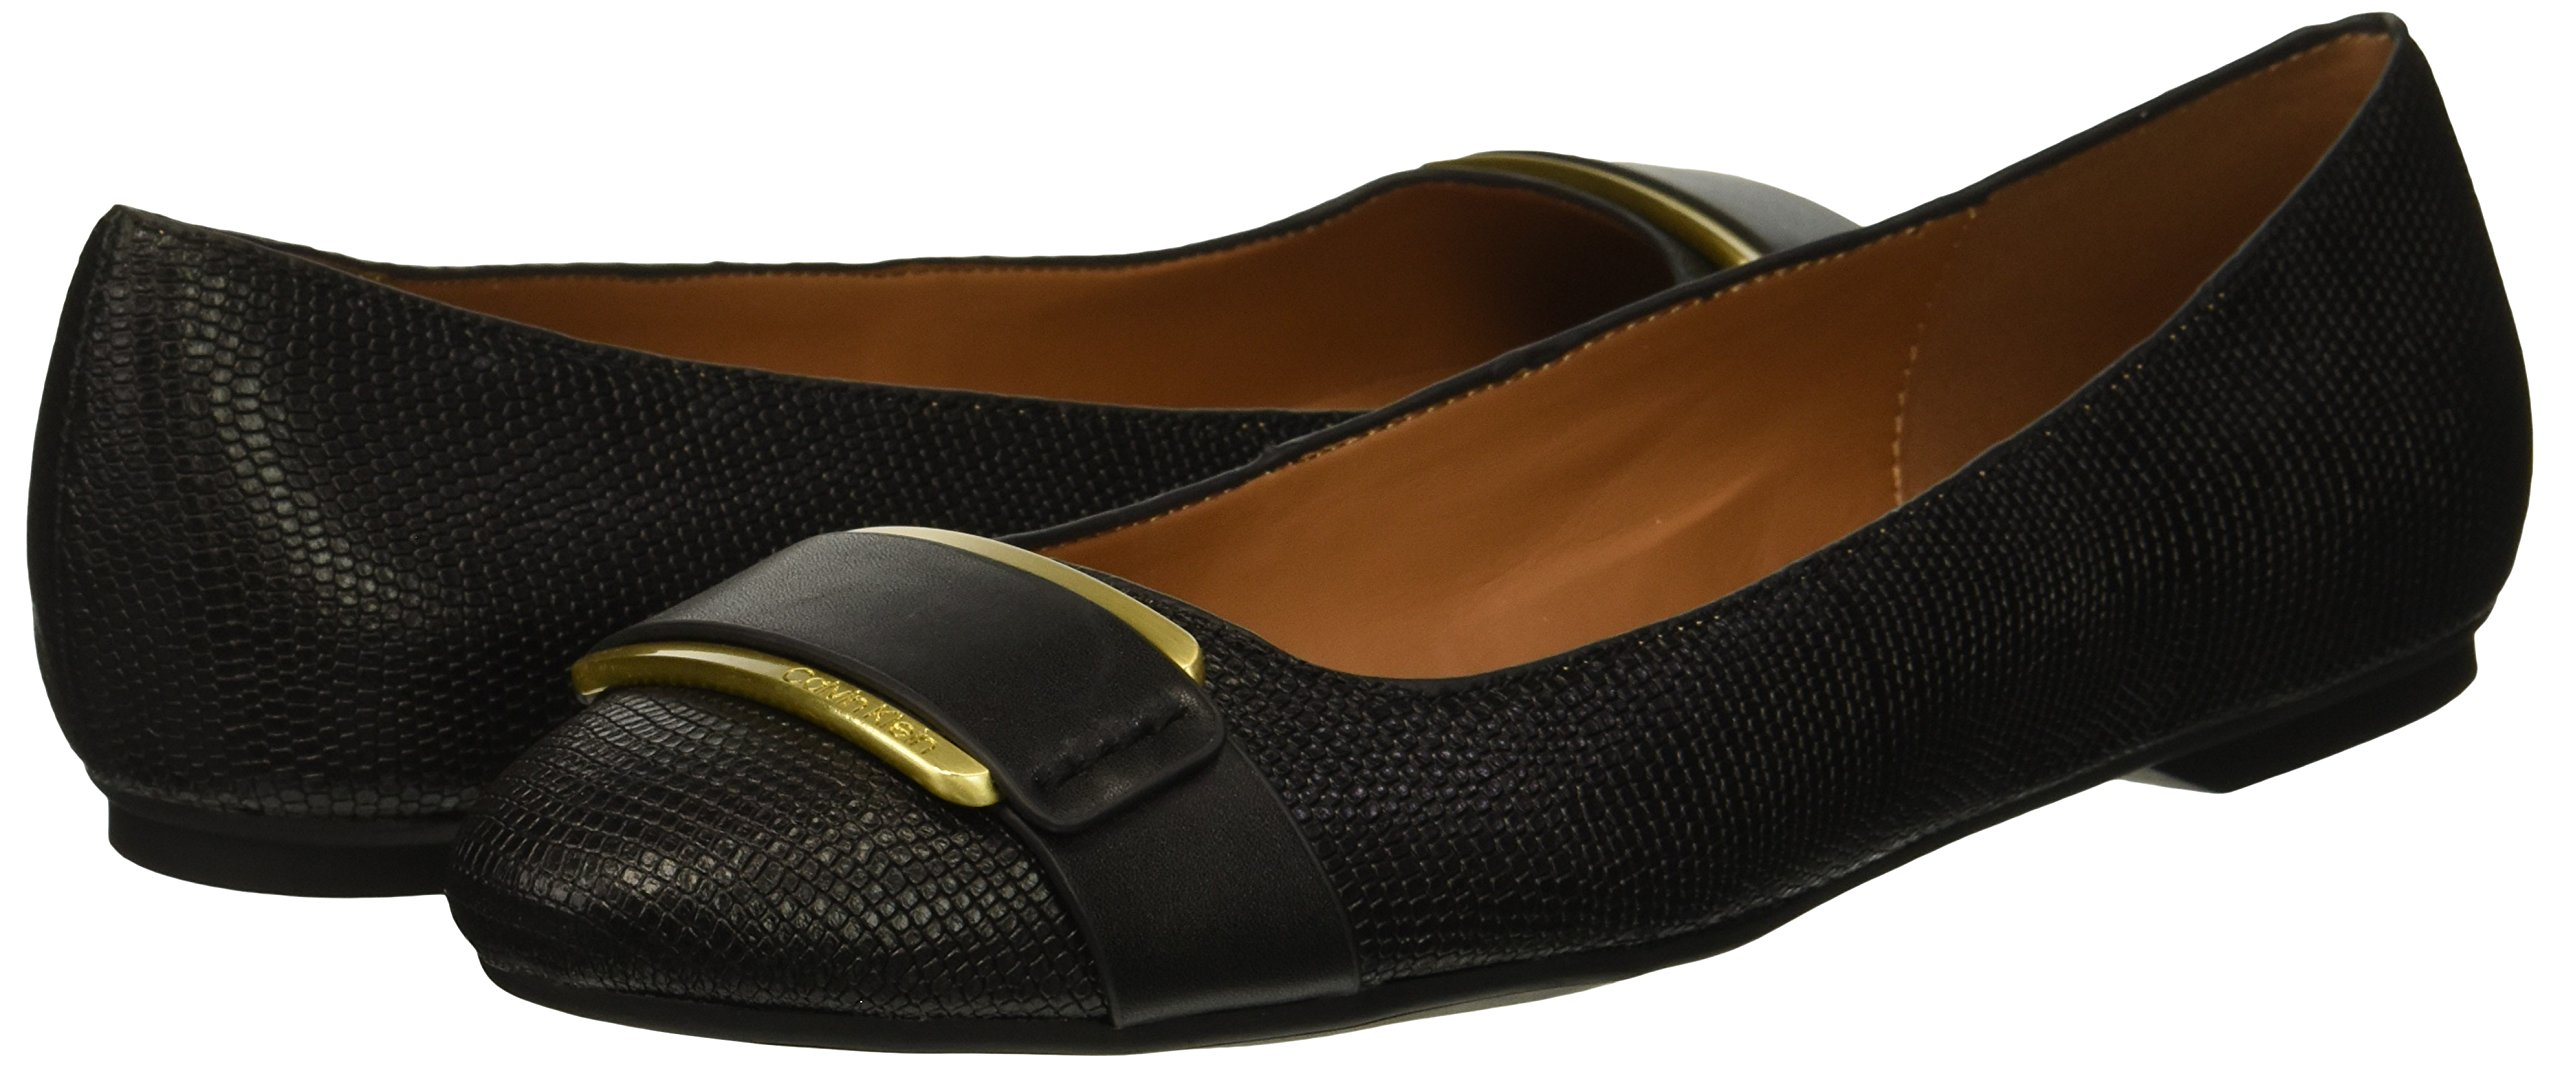 Calvin-Klein-Women-039-s-Oneta-Ballet-Flat-Black-5-M-Choose-SZ-color thumbnail 6